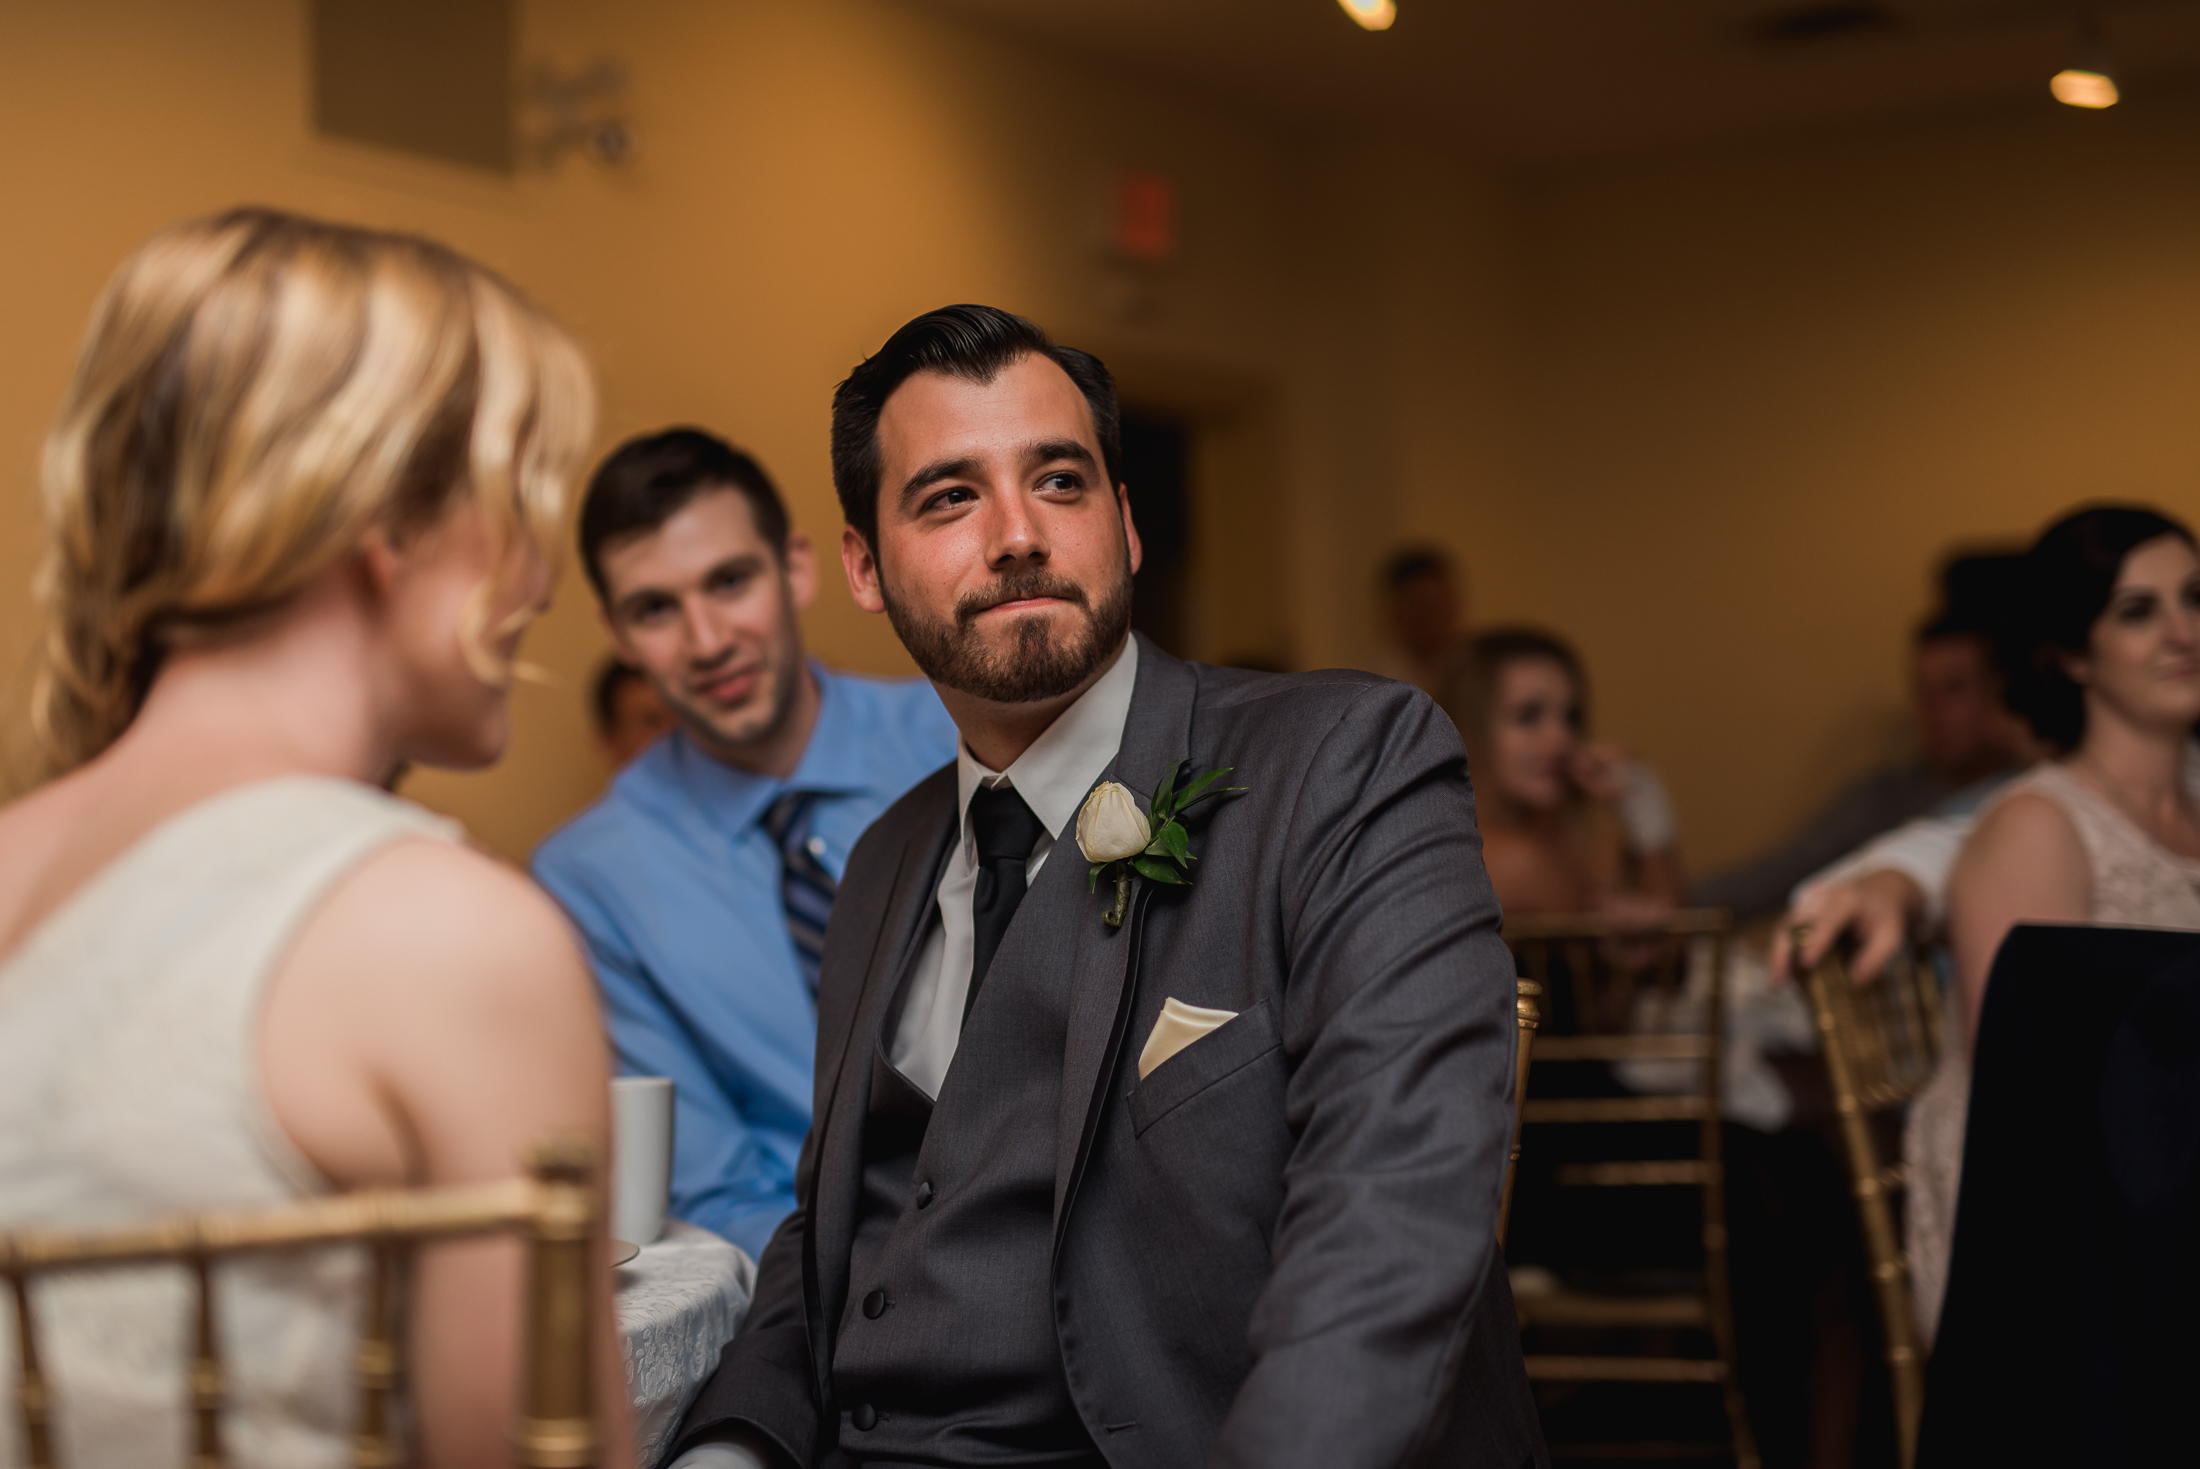 pickering_lakehouse_wedding_durham_region194